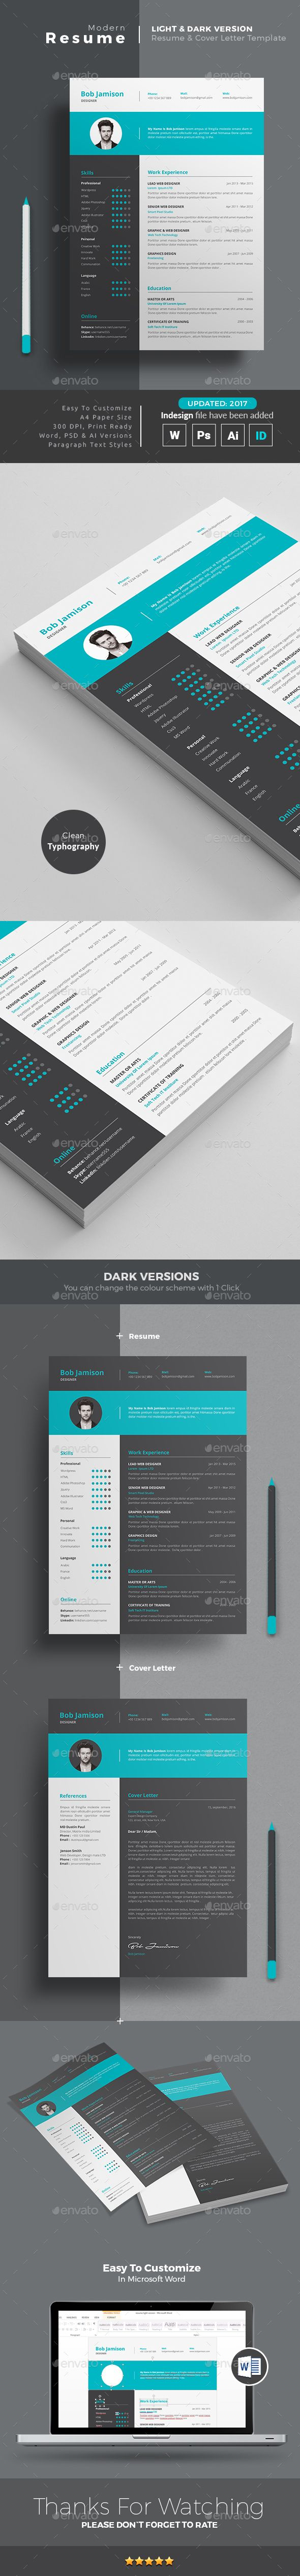 Resume — Photoshop PSD #cover letter #typography • Available here → https://graphicriver.net/item/resume/14779867?ref=pxcr